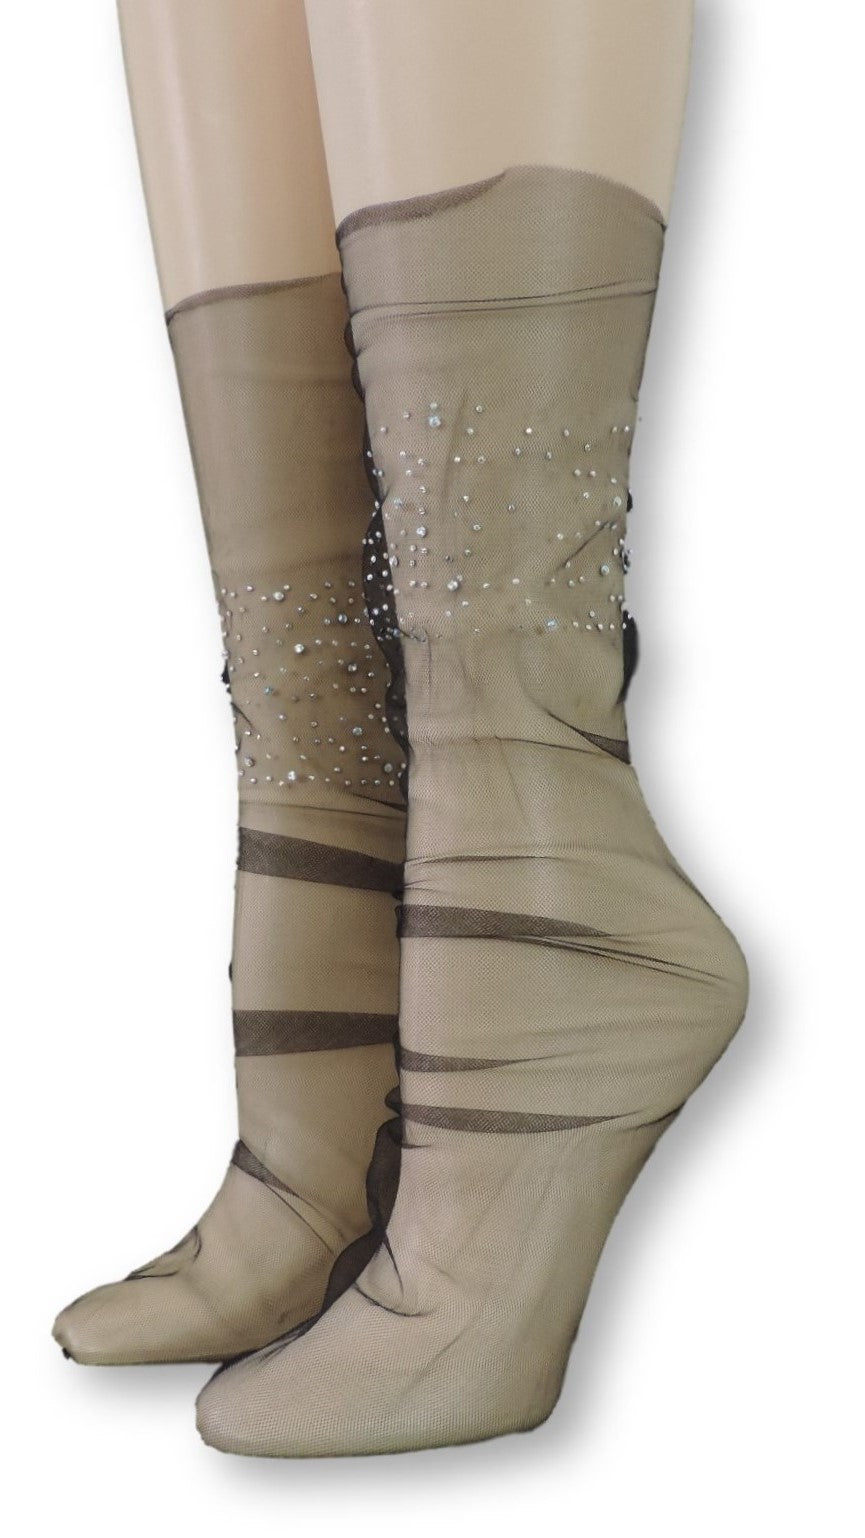 Bold Tulle Socks with Crystals